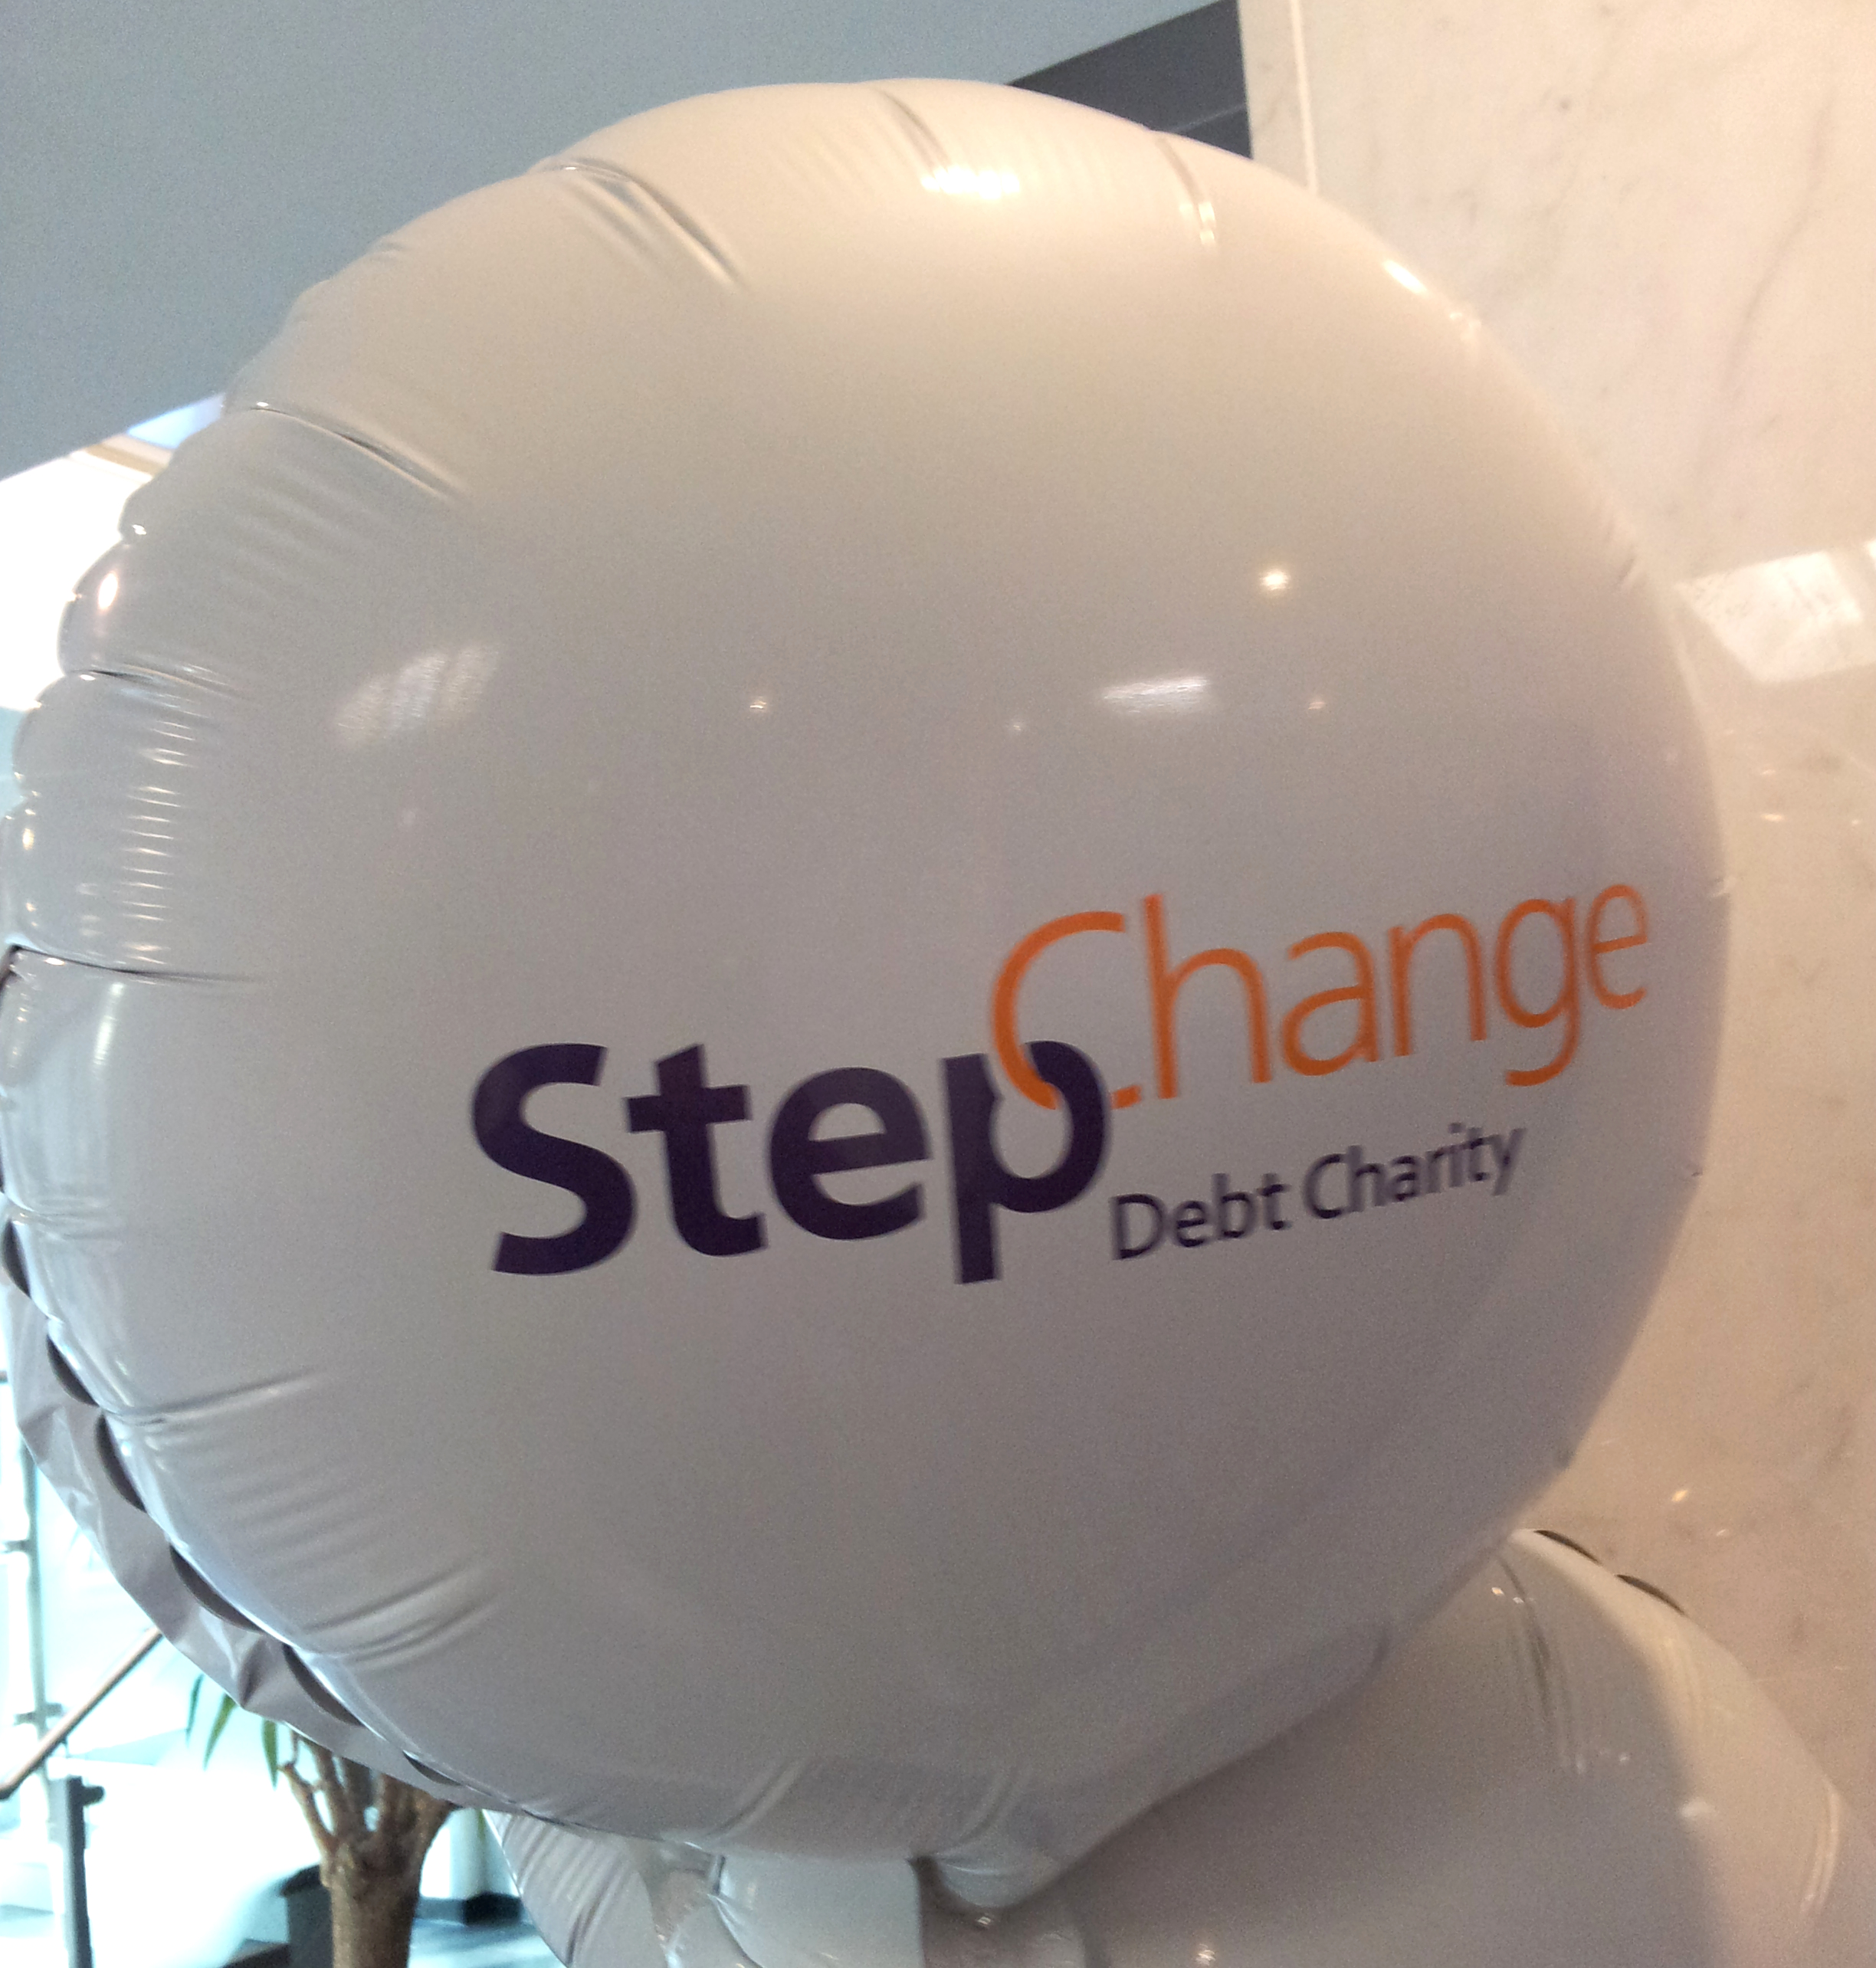 StepChange Debt Charity share their money tips